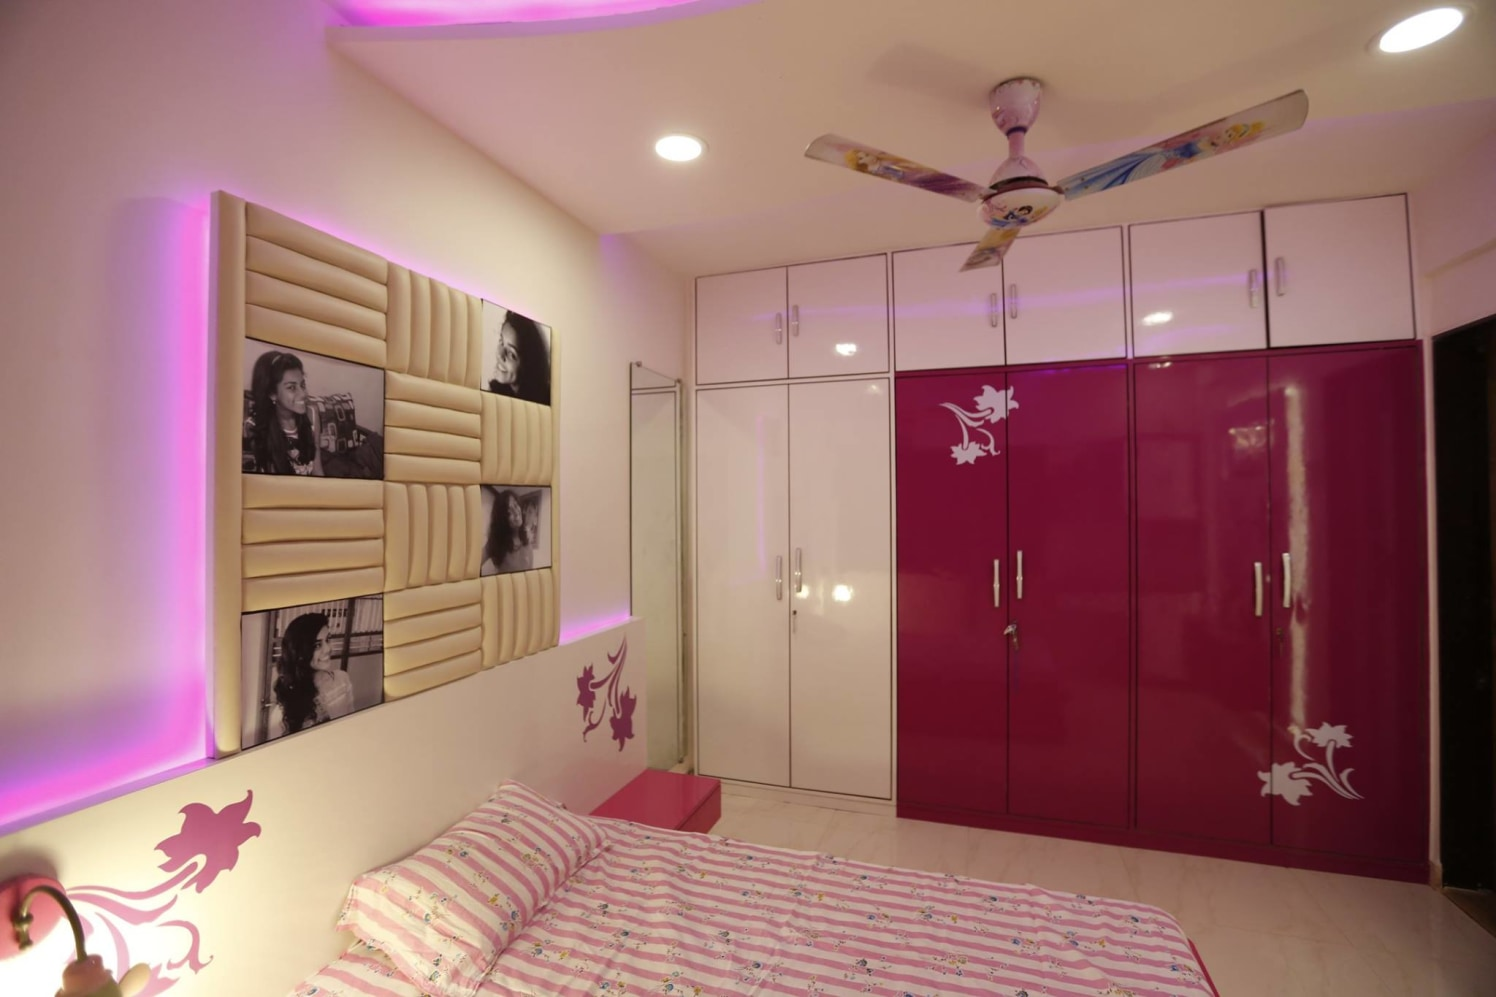 Kids Bedroom With Personalized Photo Beige Headrest by Innovations - The Interior Studio Bedroom Modern | Interior Design Photos & Ideas